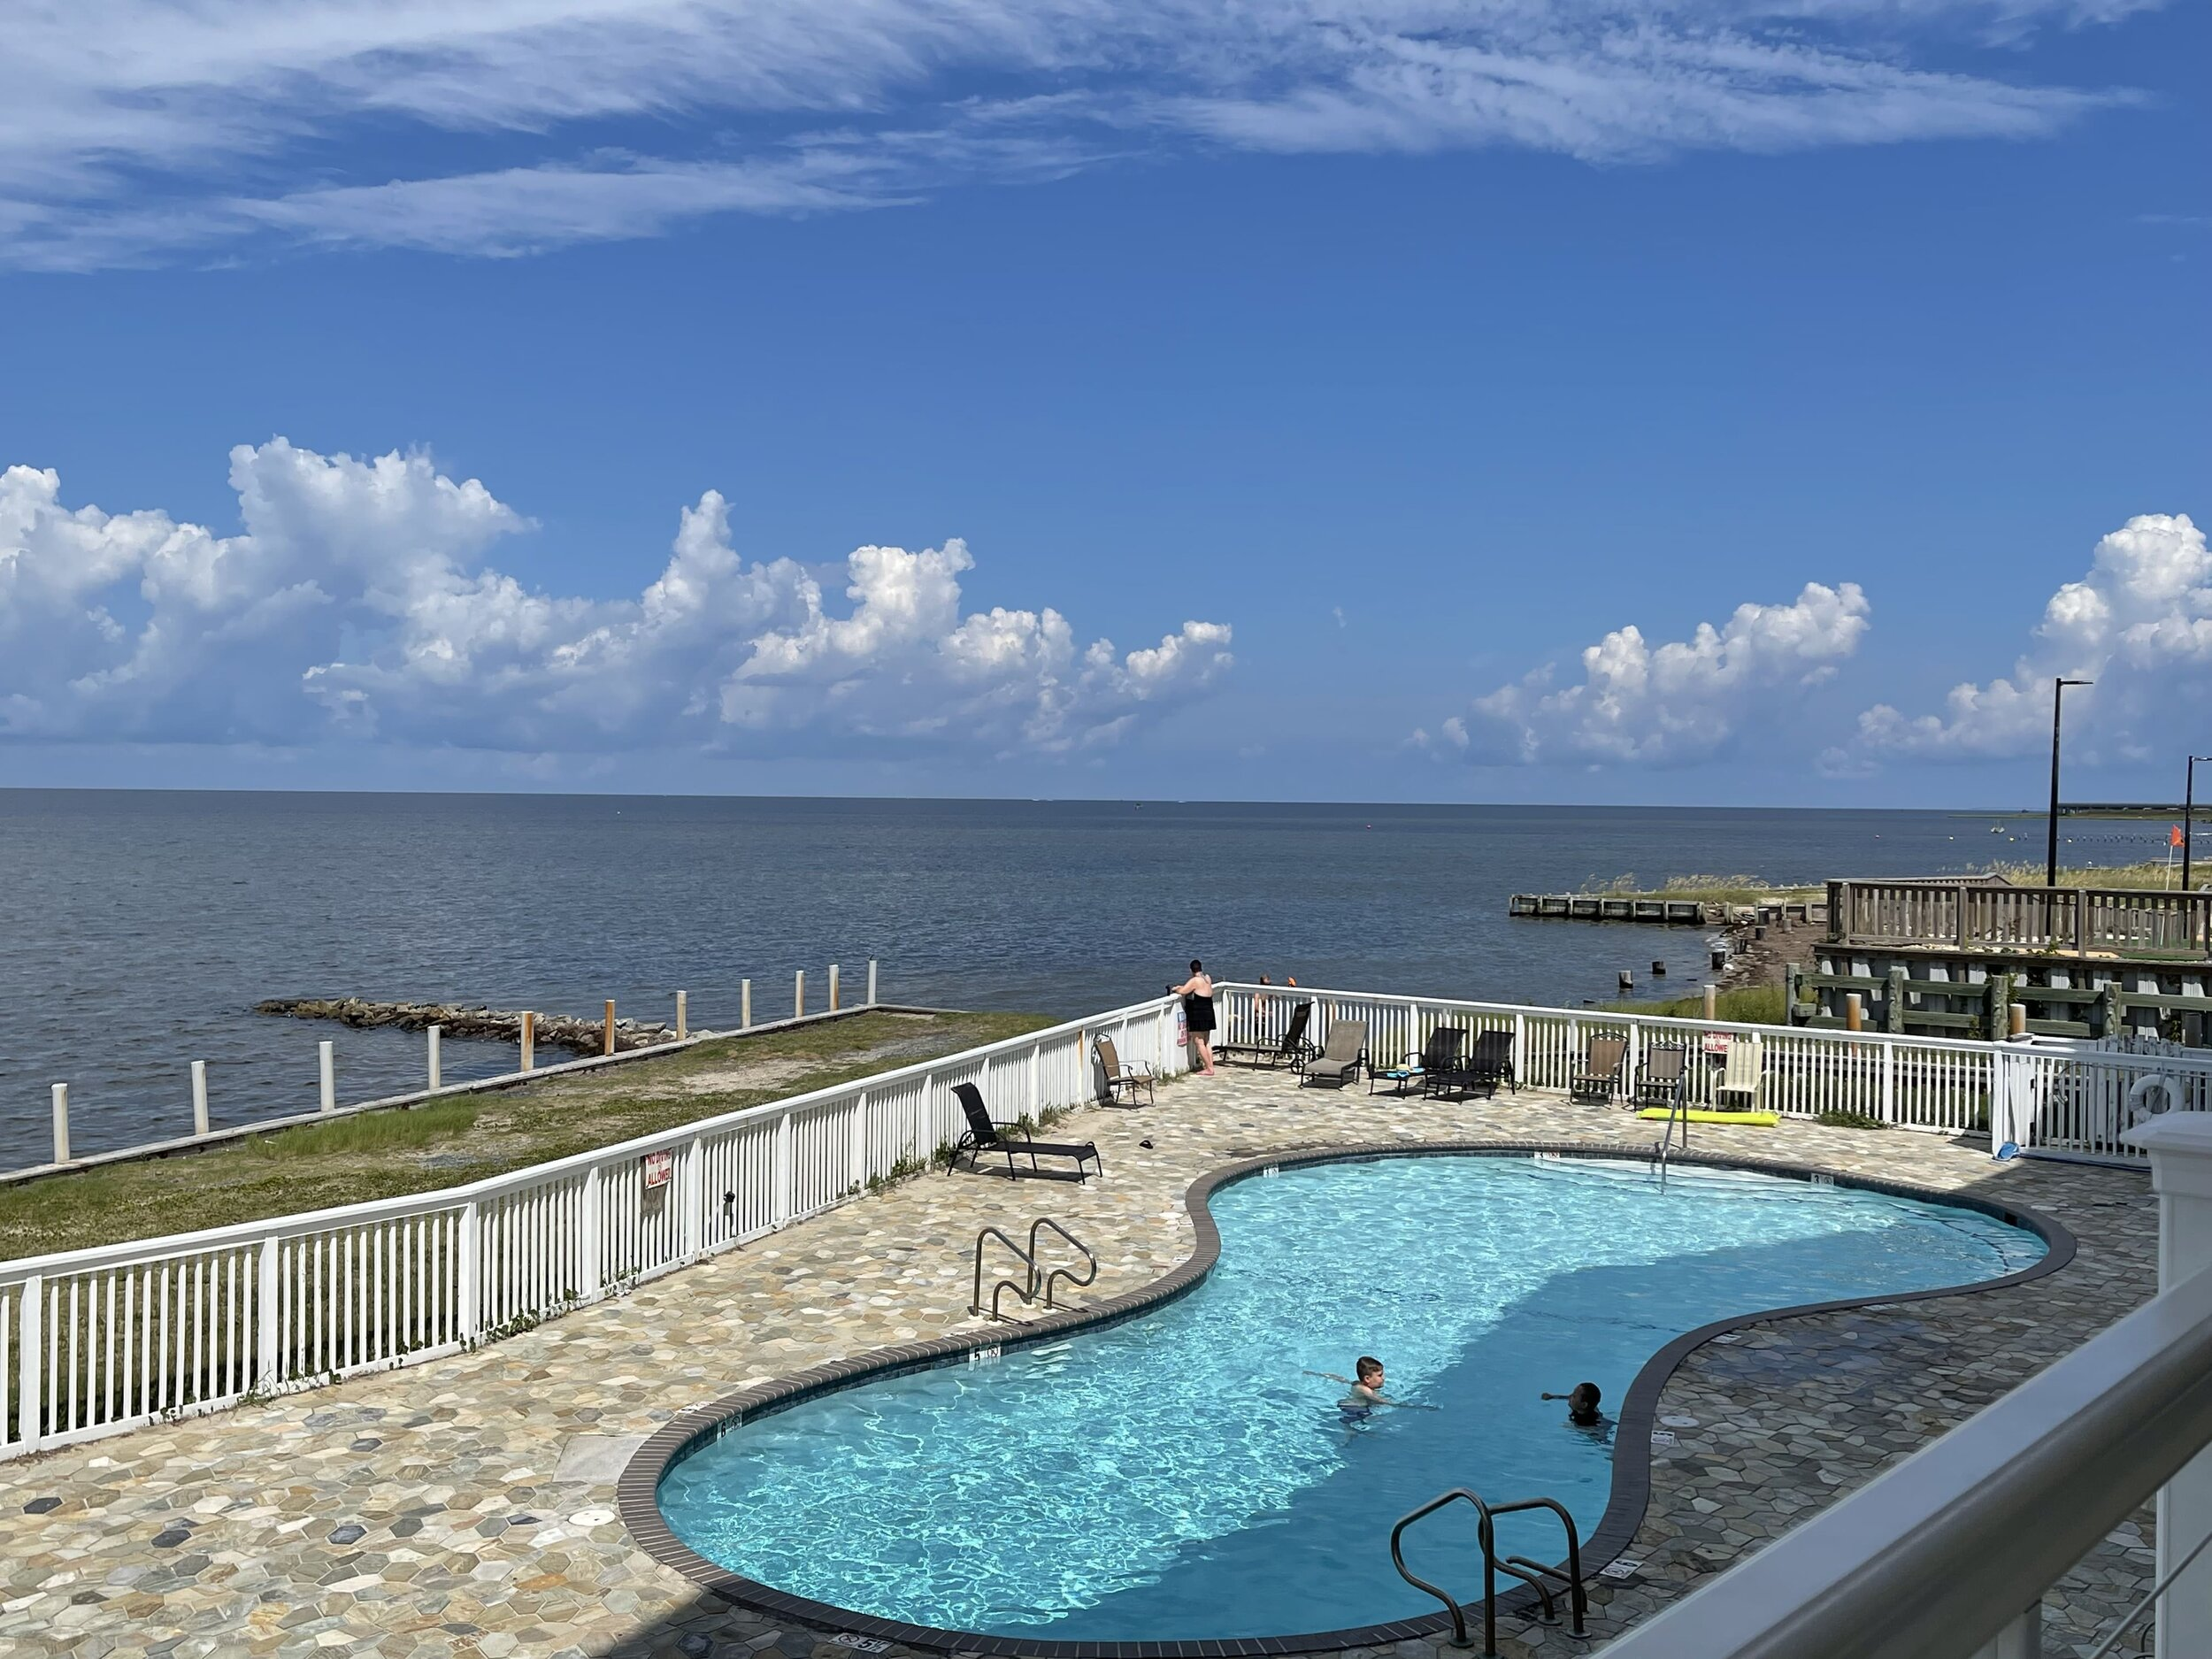 At some OBX rentals, even the pool has a view.